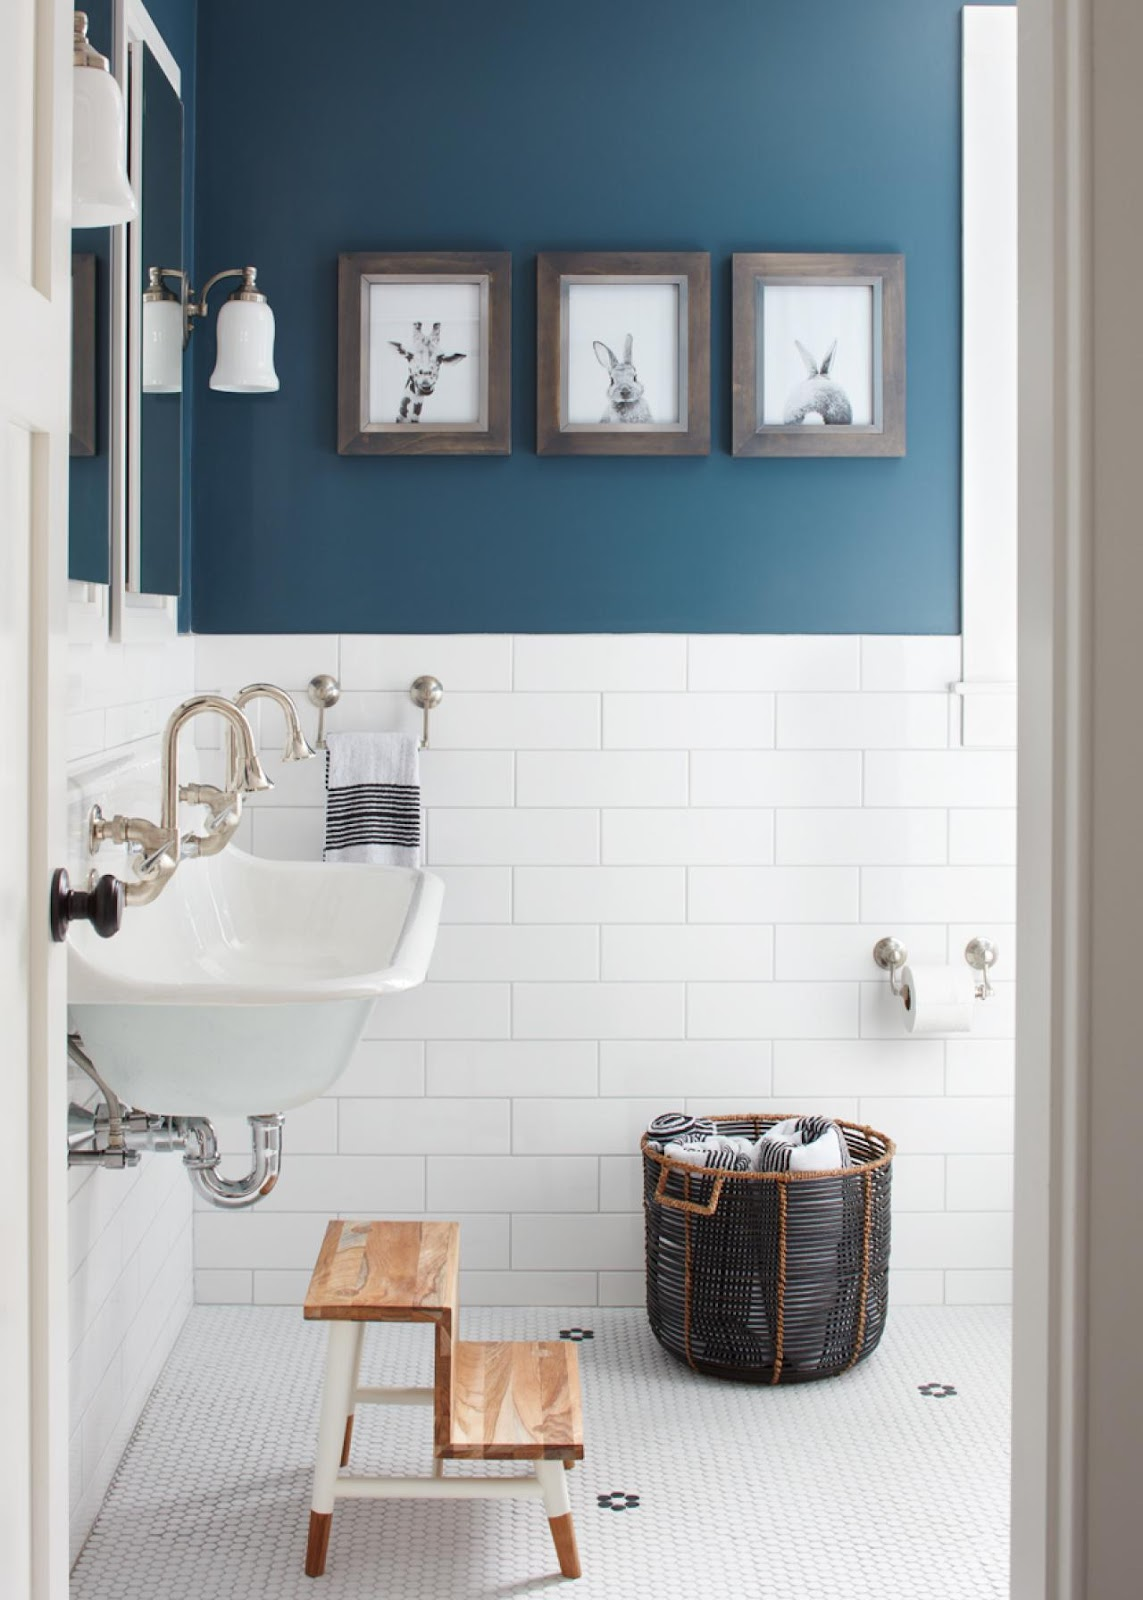 use baskets to store extra items in the bathroom